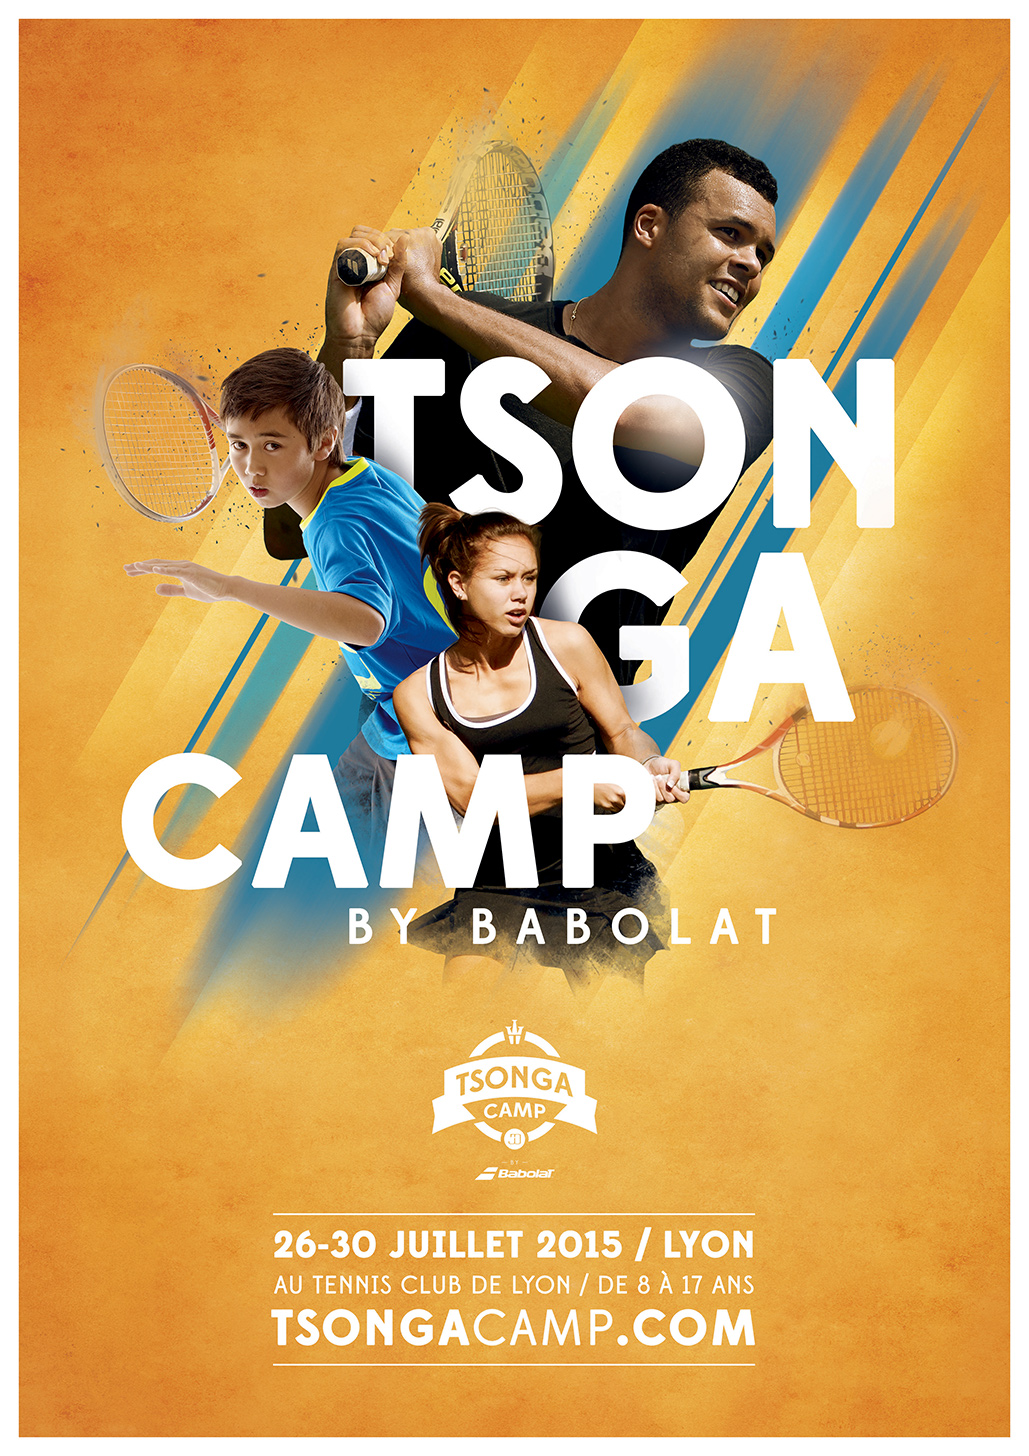 Key visual for the Tsonga Camp, a tennis academy with Babolat in Lyon